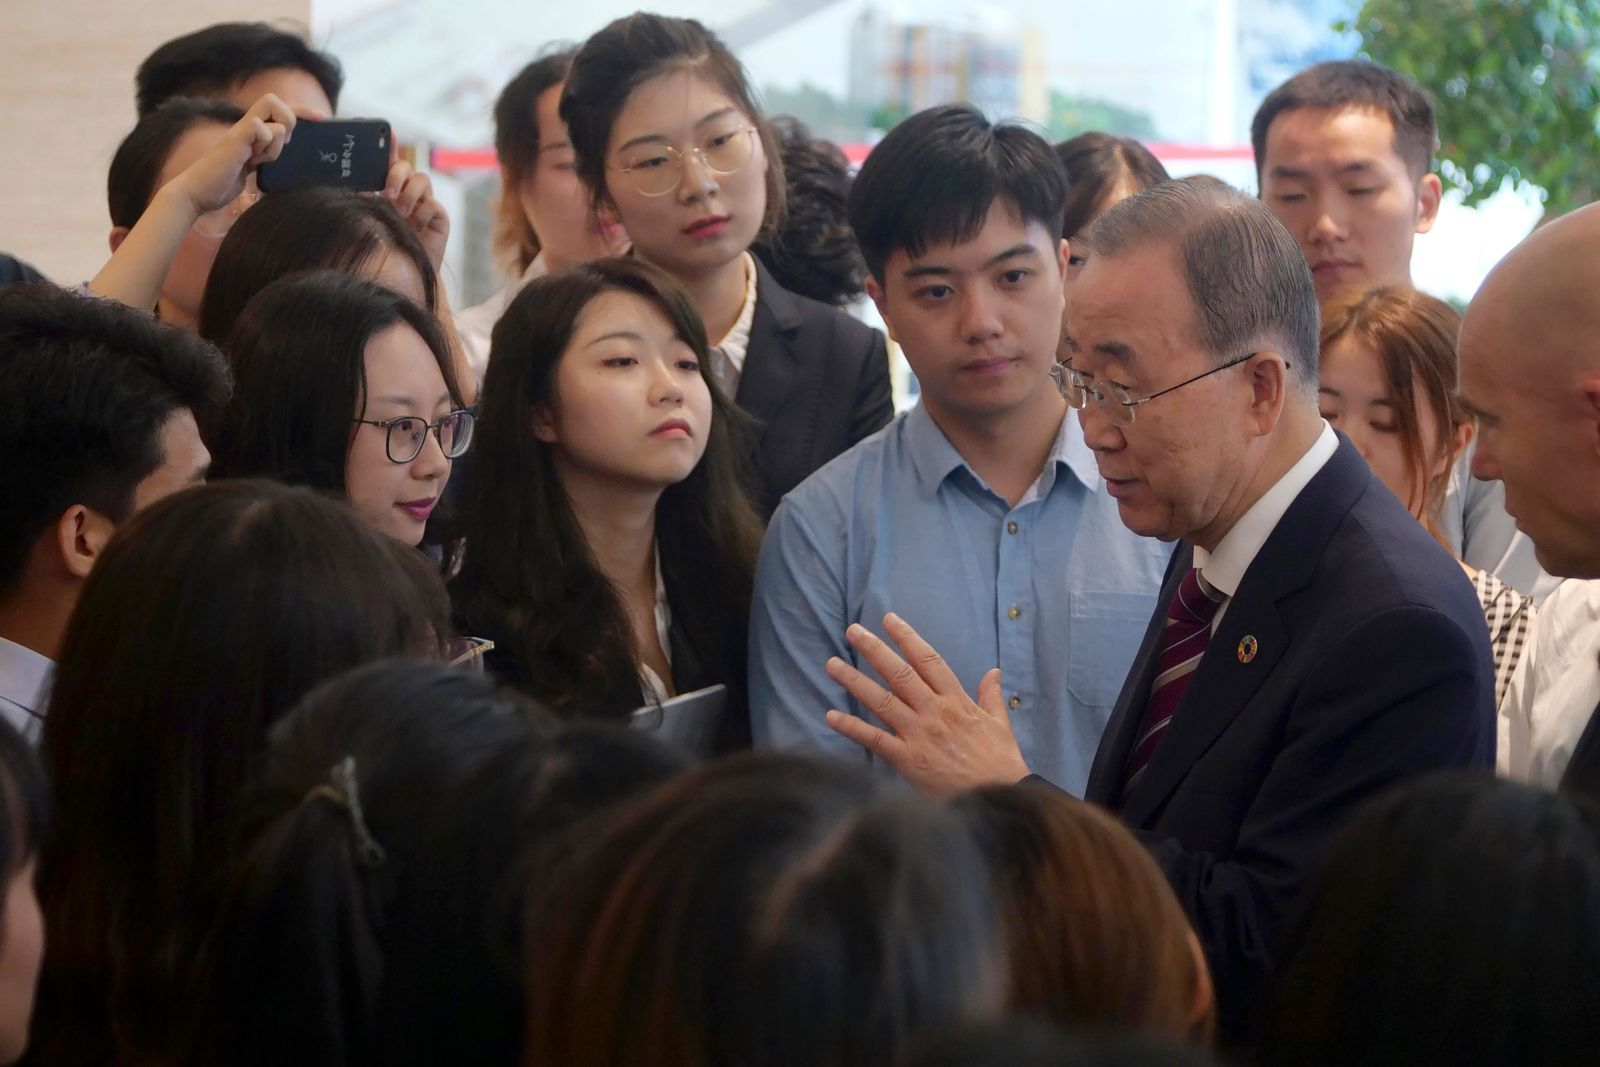 Former U.N. Secretary-General Ban Ki-moon, fourth right, speaks with attendees on the sidelines of a press conference for the release of a report on adapting to climate change in Beijing, Tuesday, Sept. 10, 2019. A group of leaders from business, politics and science called Monday for a massive investment in adapting to climate change over the next decade, arguing it would reap significant returns as countries avoid catastrophic losses and boost their economies. (AP Photo/Sam McNeil)